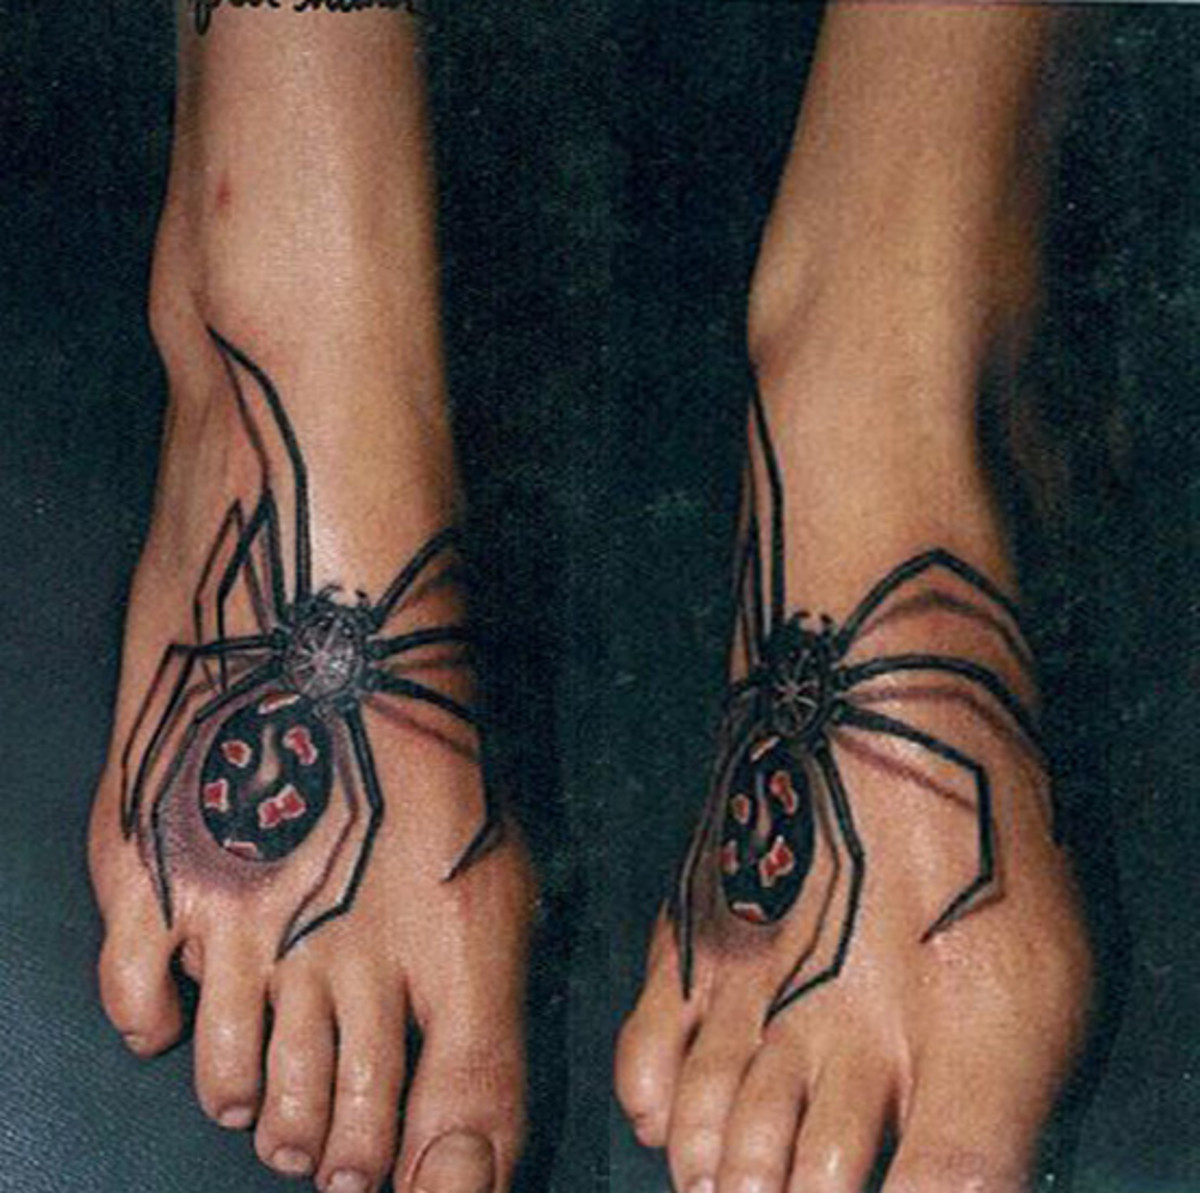 Spider Tattoo on Foot